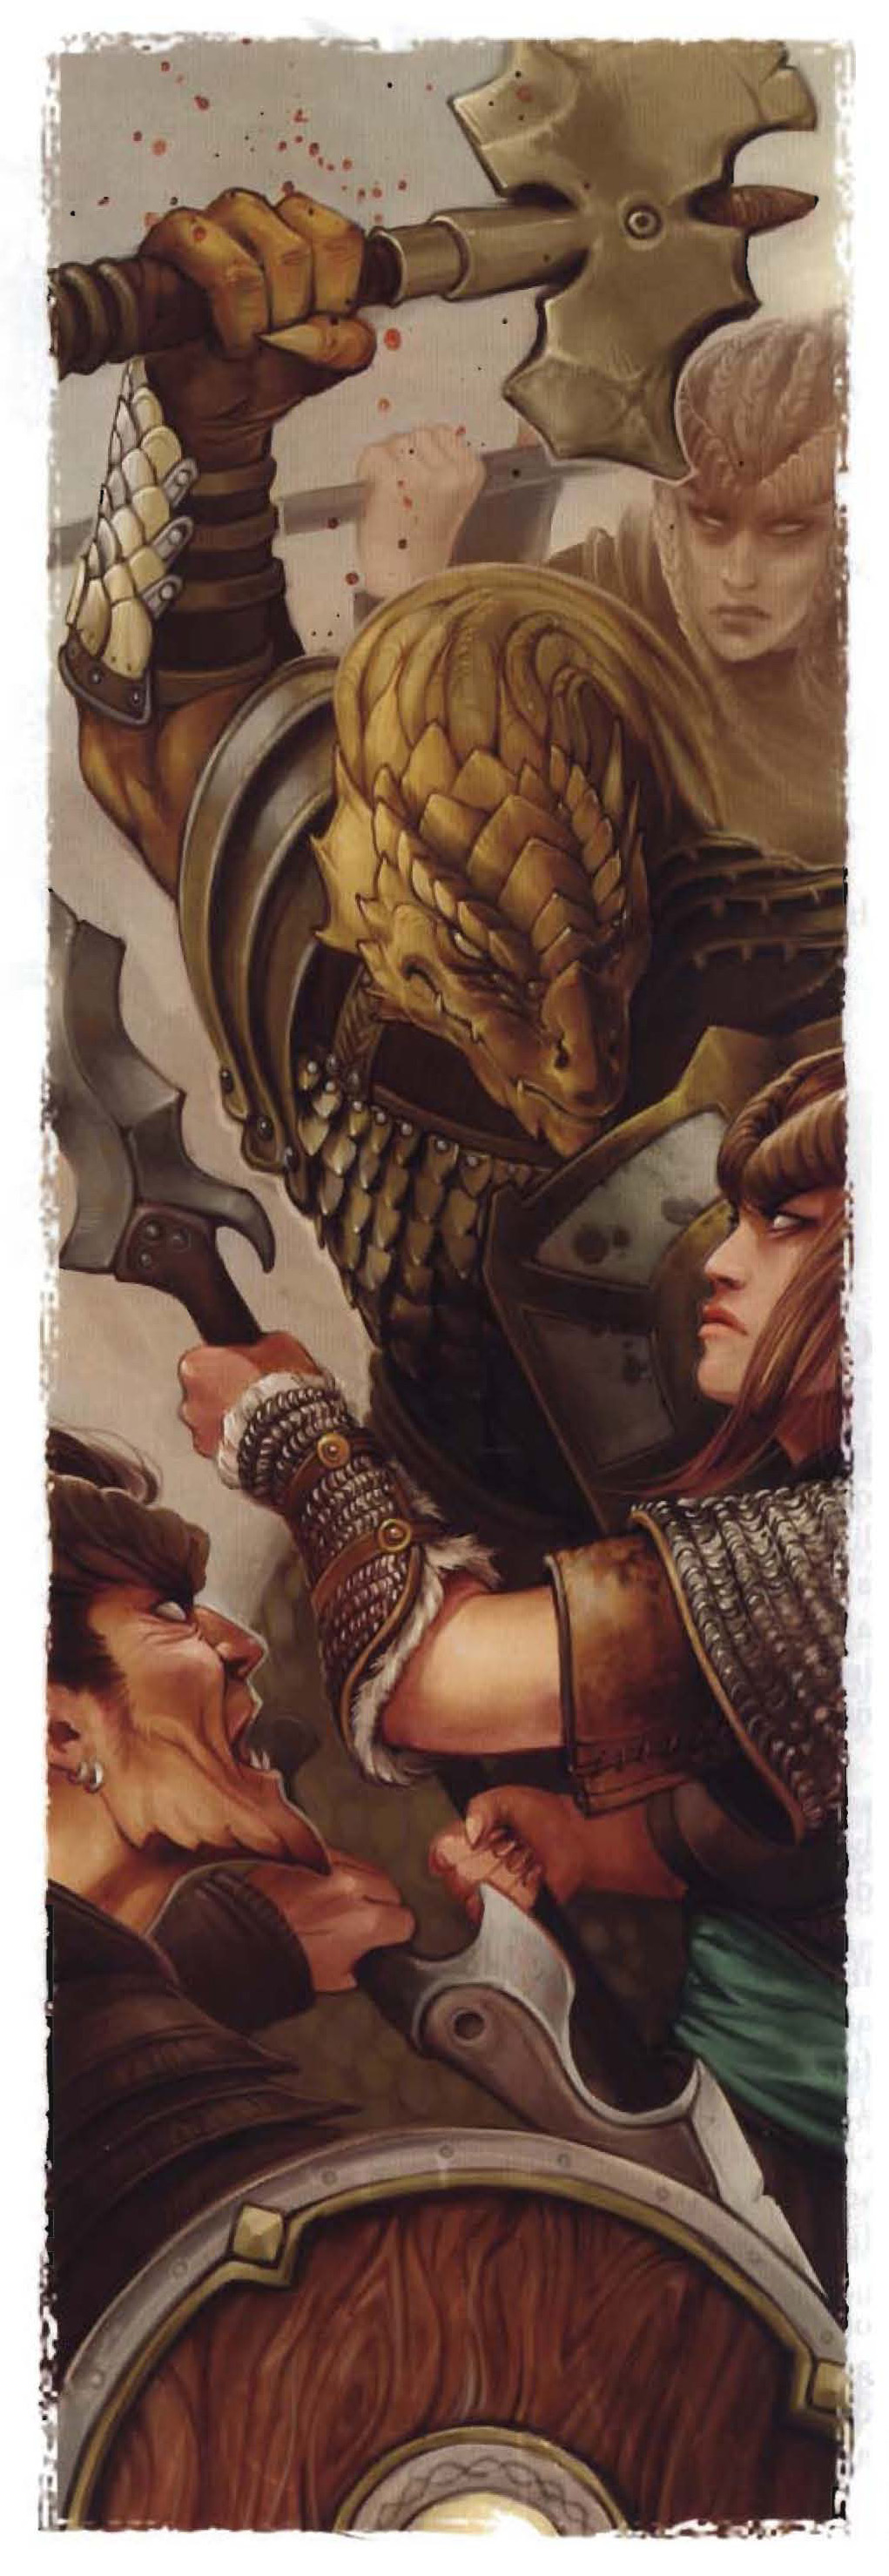 {$tags} Tiefling contro dragonide - by Eva Widermann Player's Handbook Races, Dragonborn (2010-01) © Wizards of the Coast & Hasbro